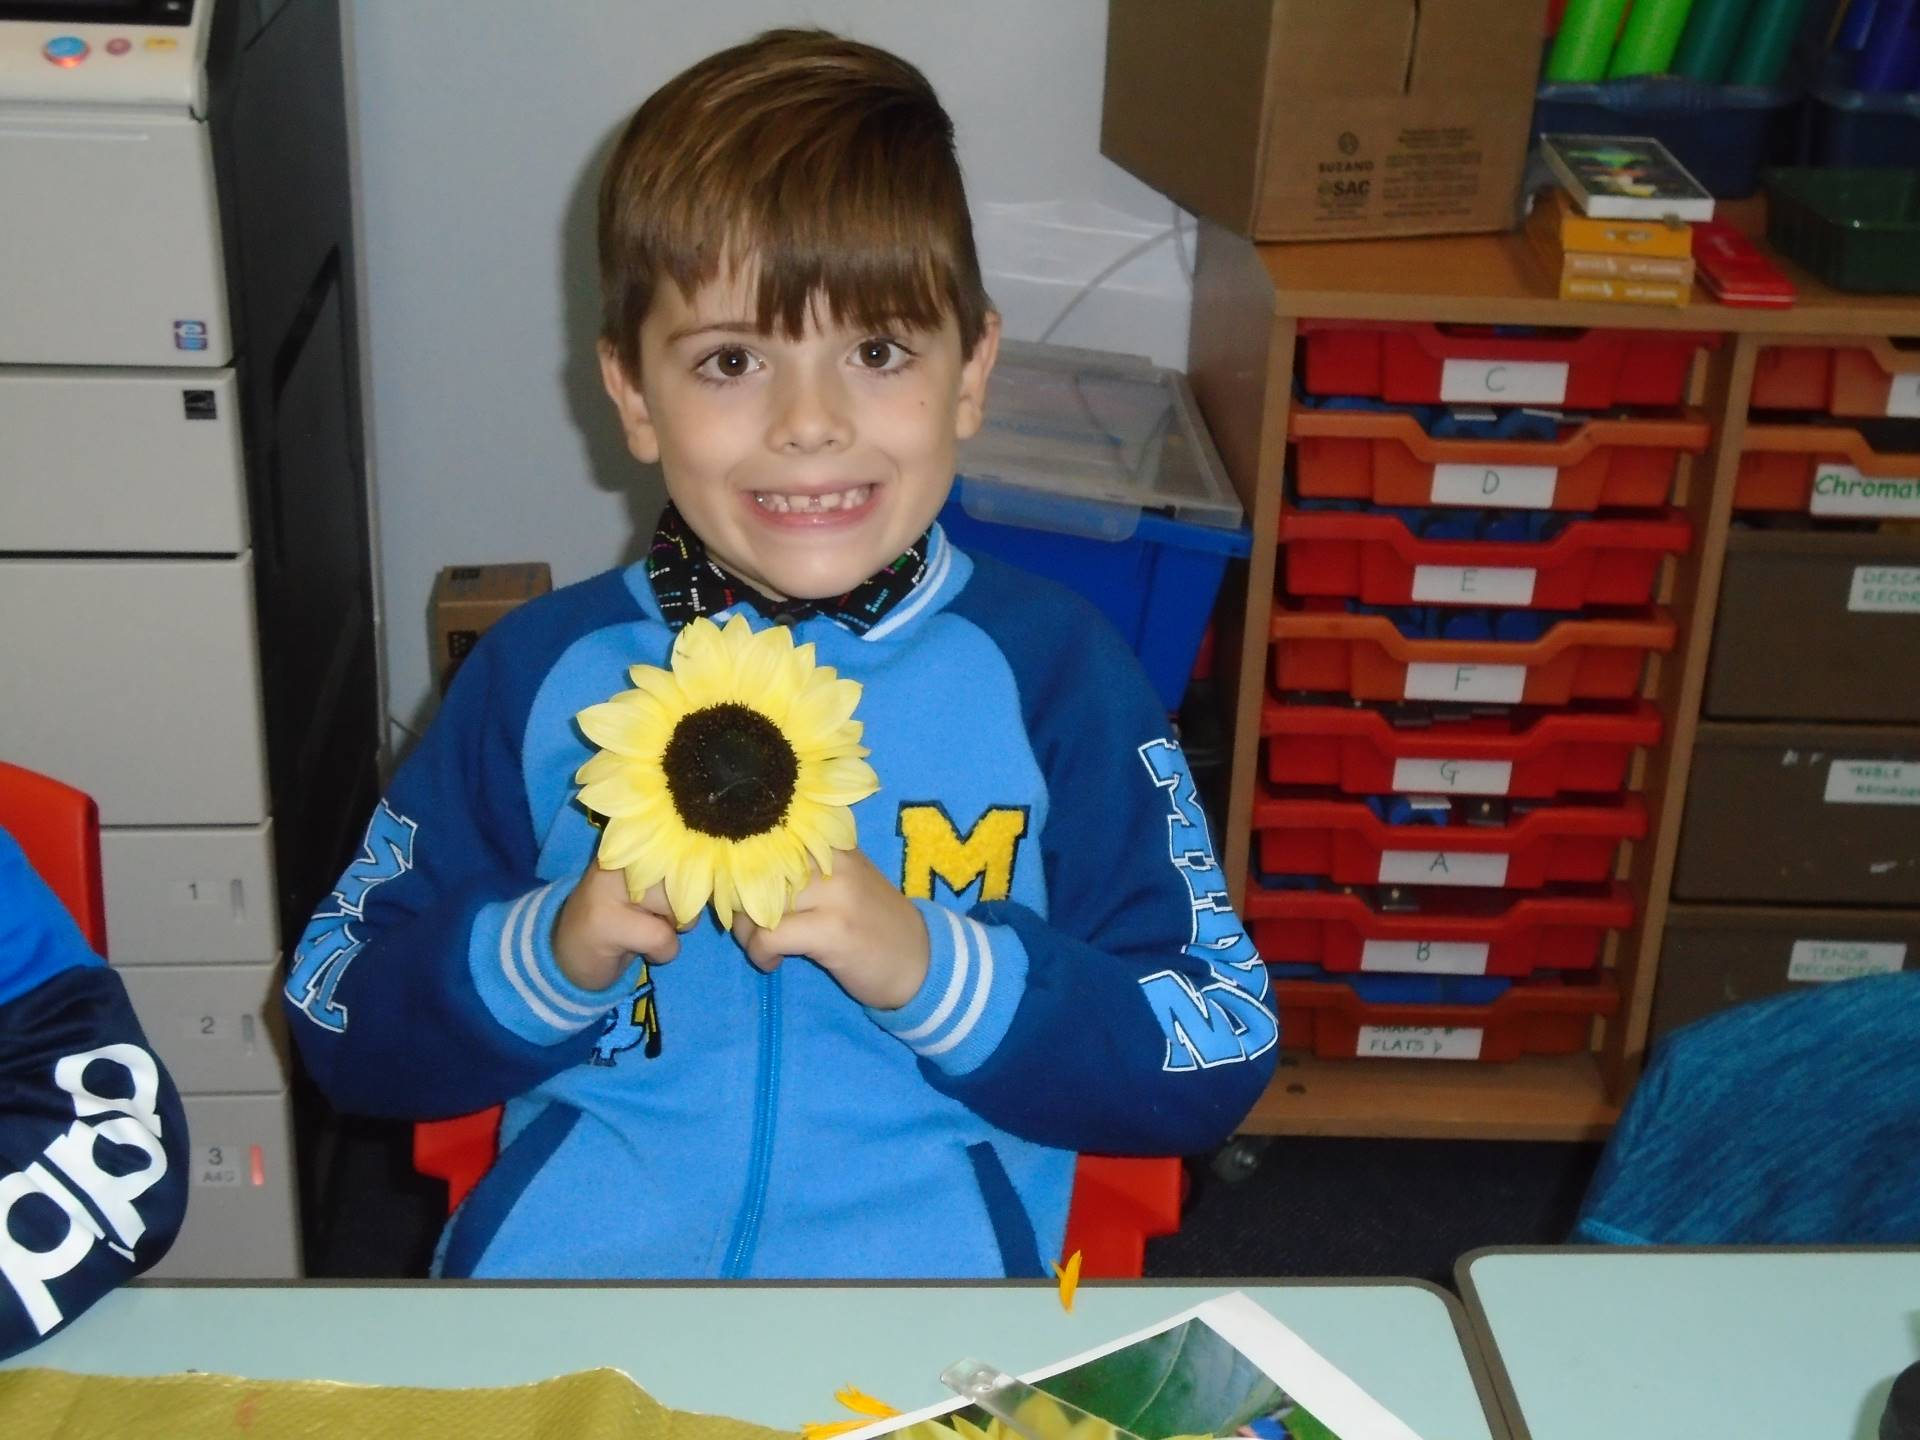 Child holding a sunflower